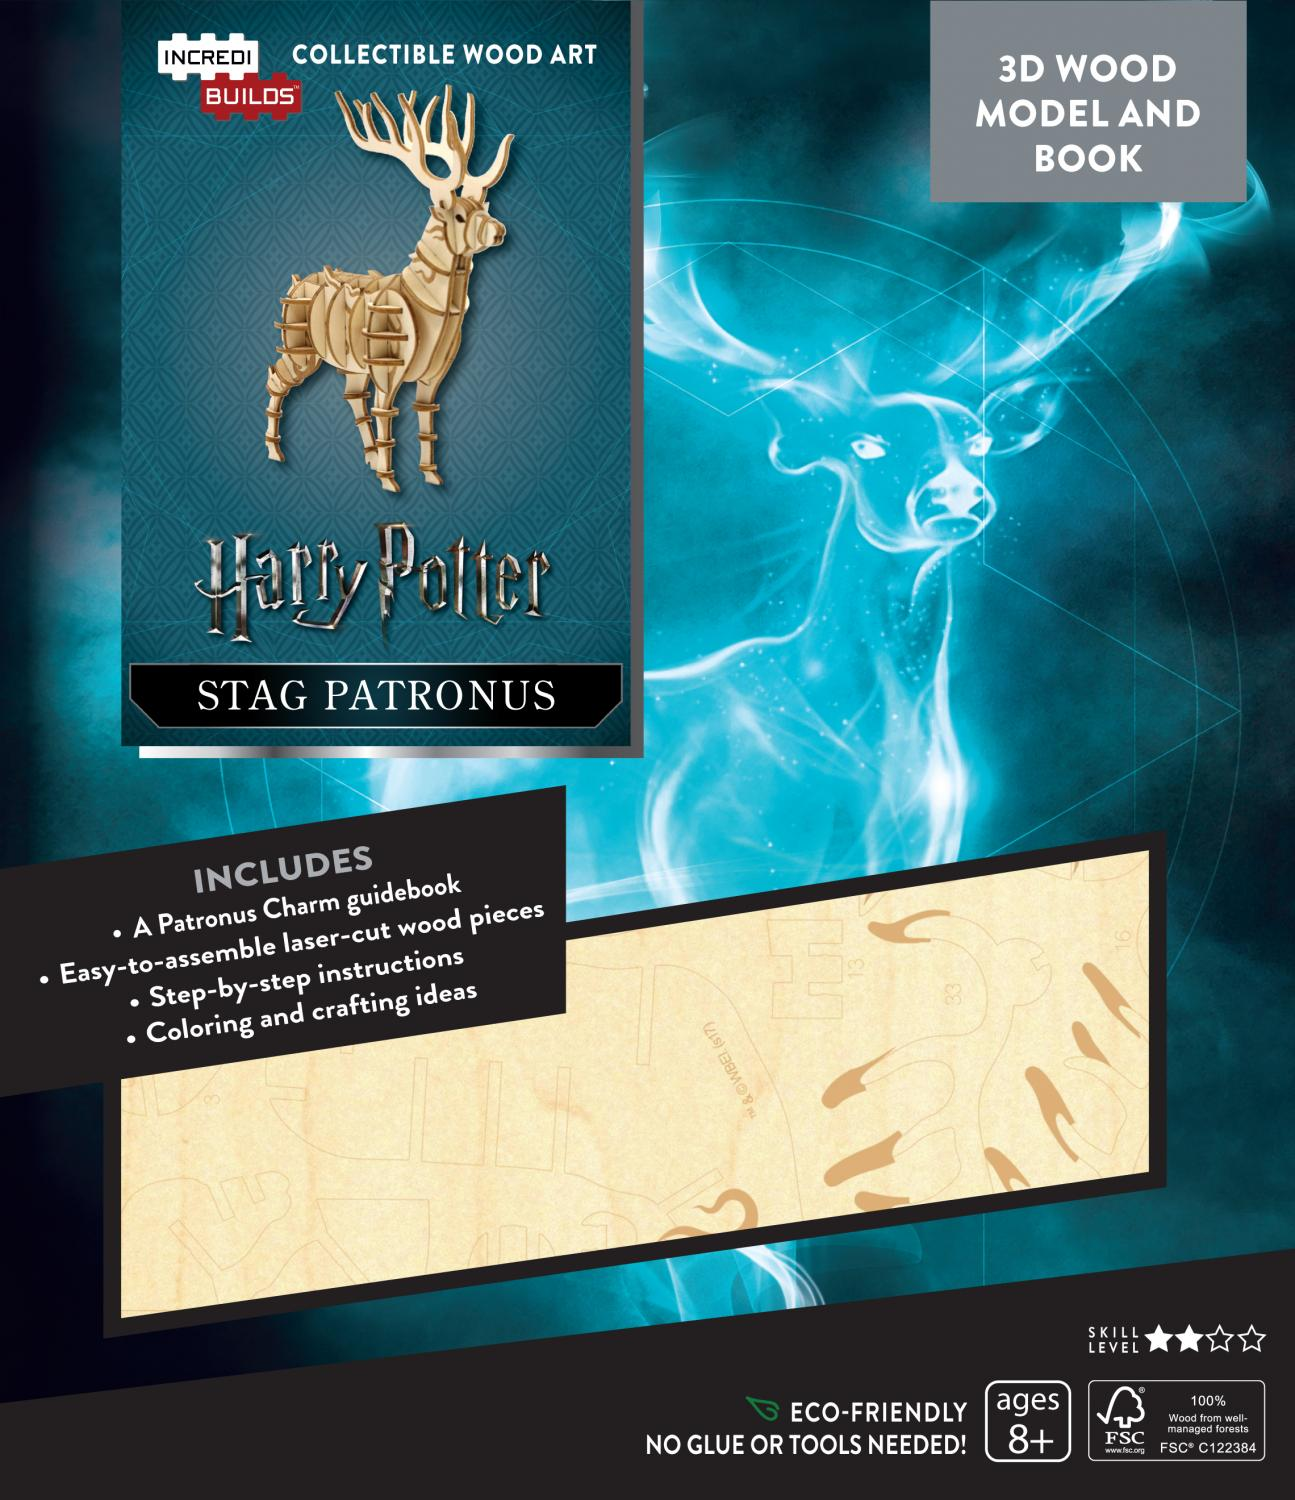 Harry Potter: Stag Patronus 3D Wood Model and Book